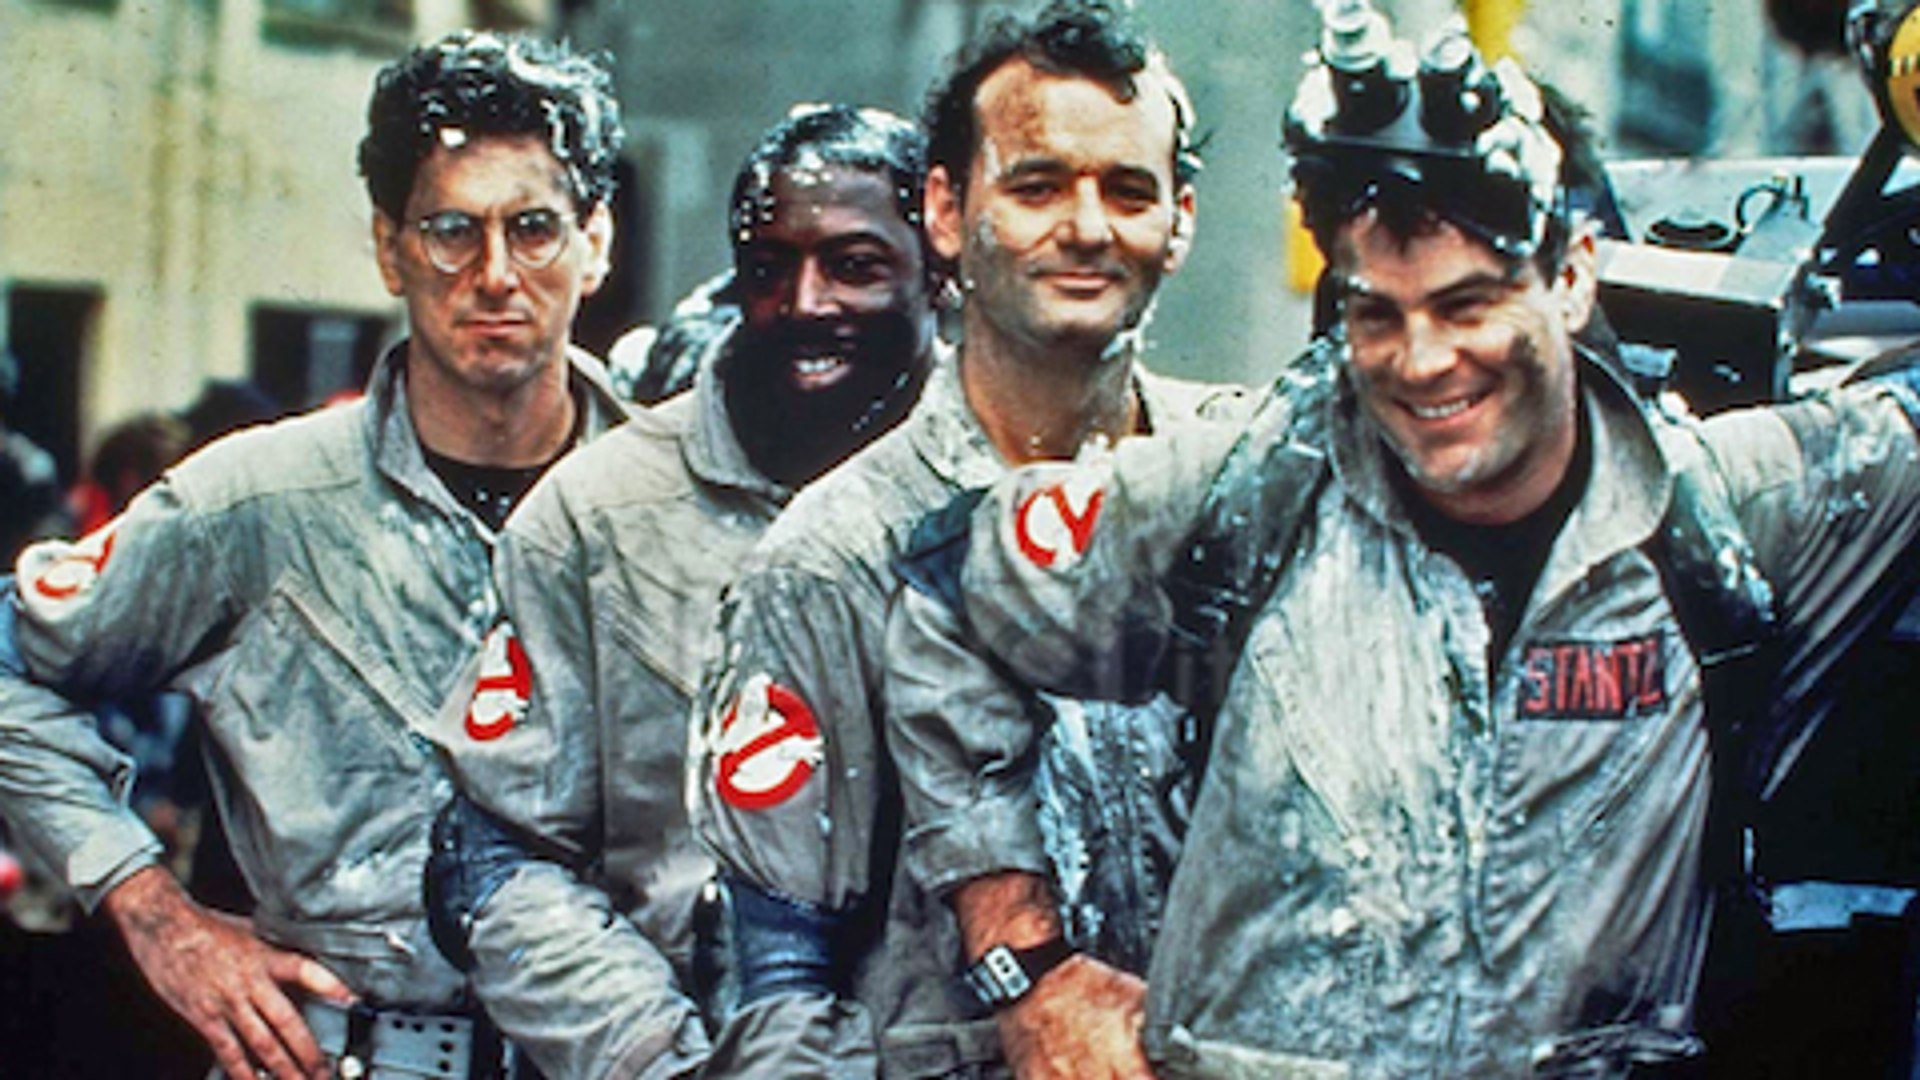 Top 10 Comedy Movies: 1980s